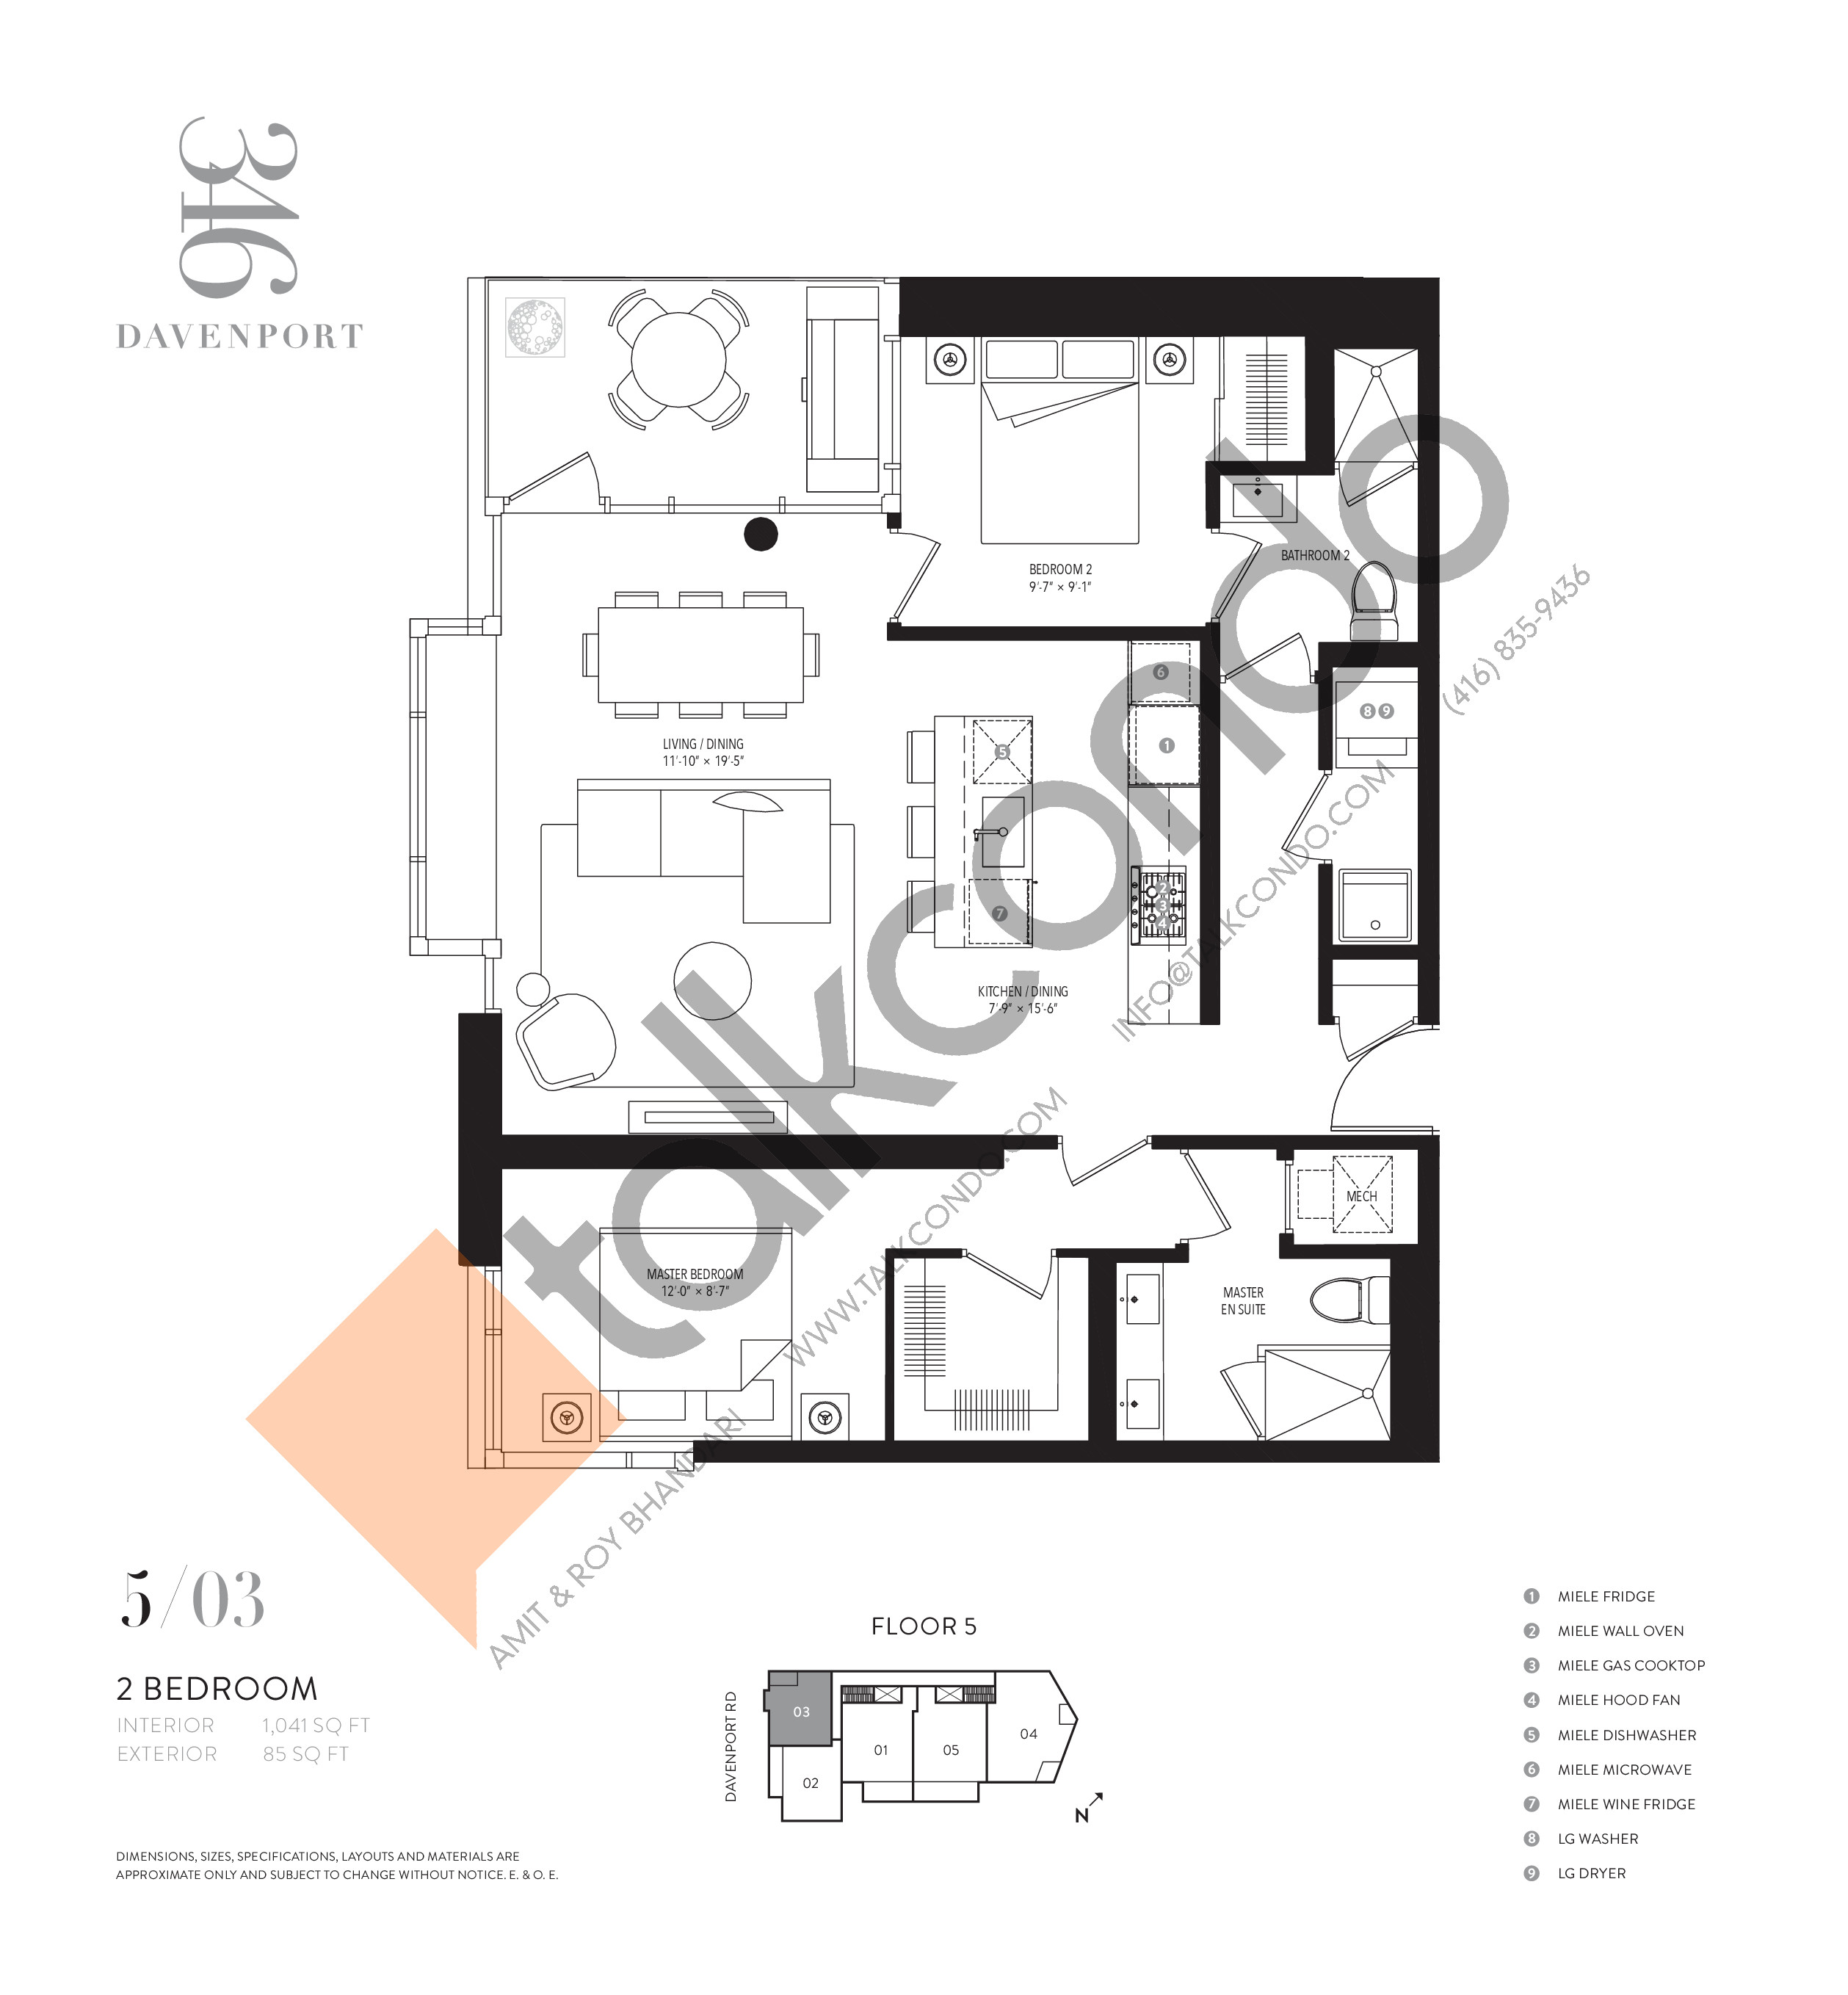 503 Floor Plan at 346 Davenport Condos - 1041 sq.ft